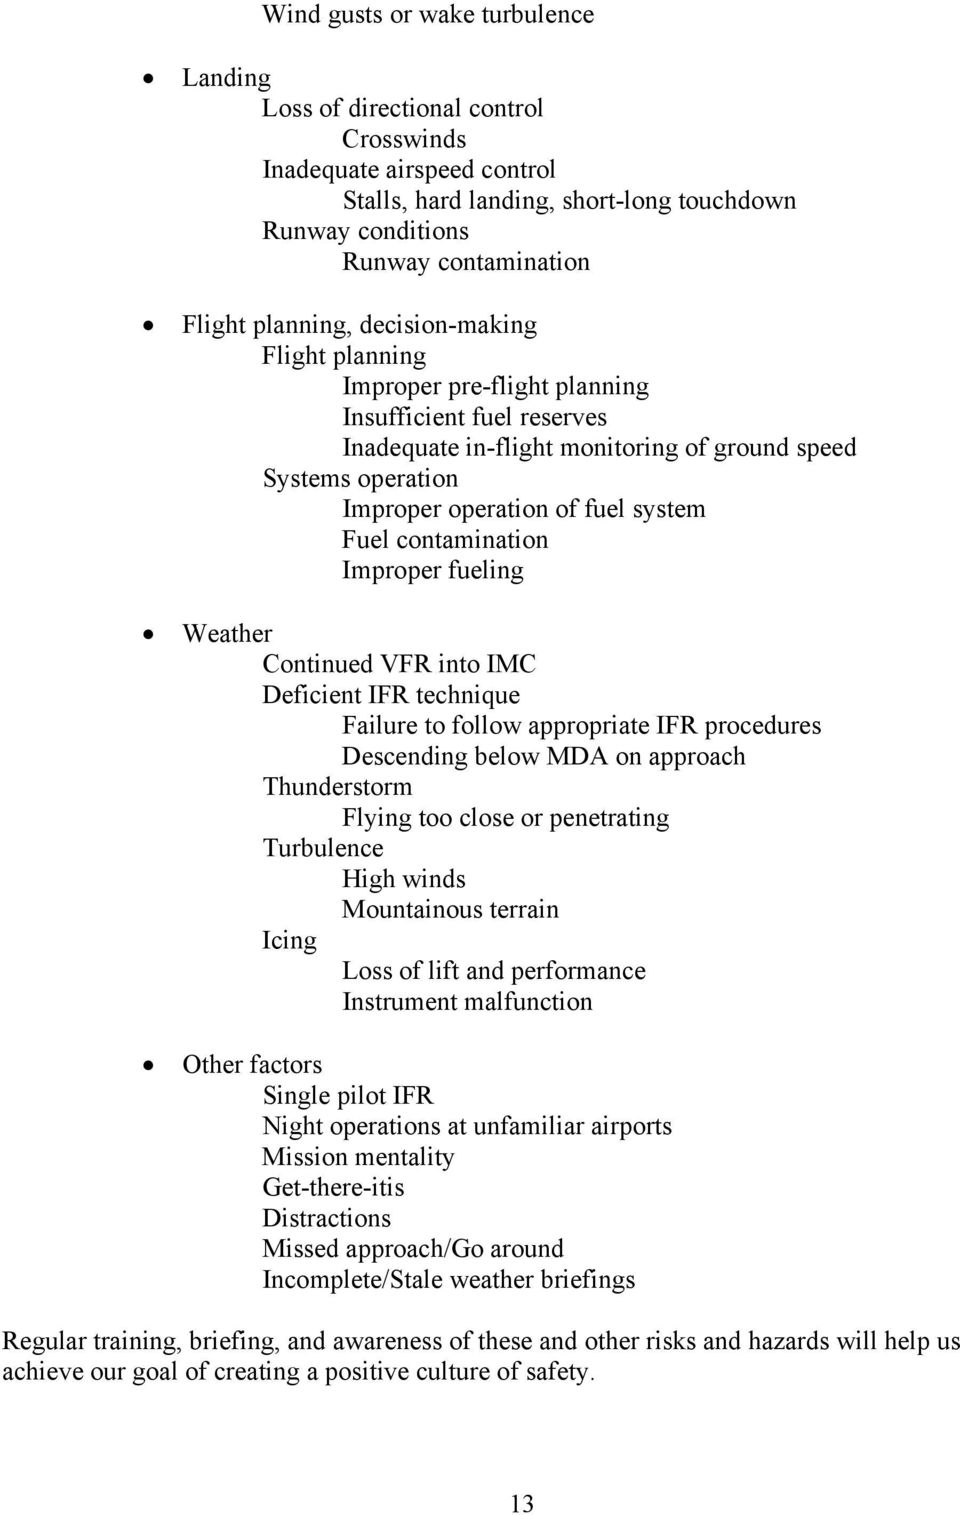 Fuel contamination Improper fueling Weather Continued VFR into IMC Deficient IFR technique Failure to follow appropriate IFR procedures Descending below MDA on approach Thunderstorm Flying too close